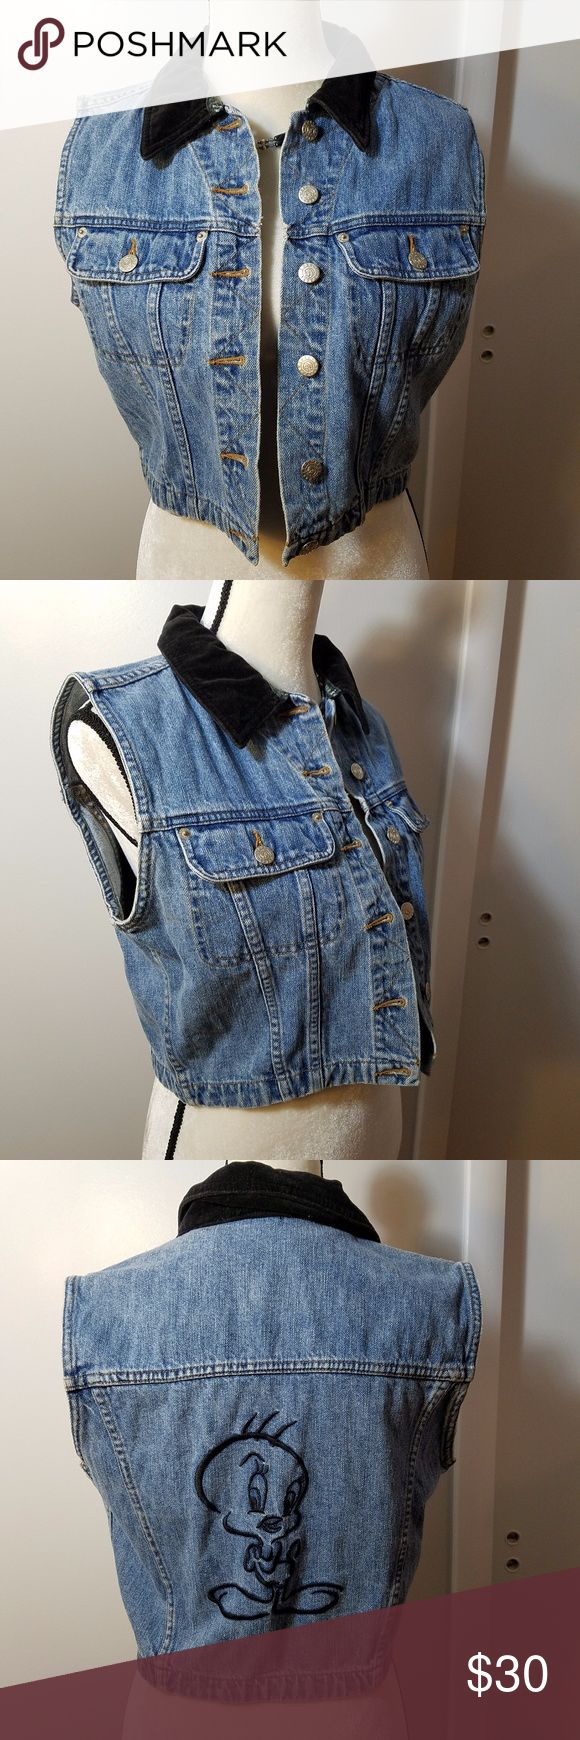 Warner Bros. Vintage 90's Tweety Bird Denim Vest Excellent pr-owned condition. No stains, damages, or wear. Each button bears the Tweety Bird logo. Official Warner Bros. Studio wear. Measurements in picture, tag says size M. Embroidered Tweety Bird picture in the back in black. Collar is velvet. Two front breast pockets. It is a short vest, ends just above the waist. Vintage piece from the 90's. Warner Brothers Jackets & Coats Vests